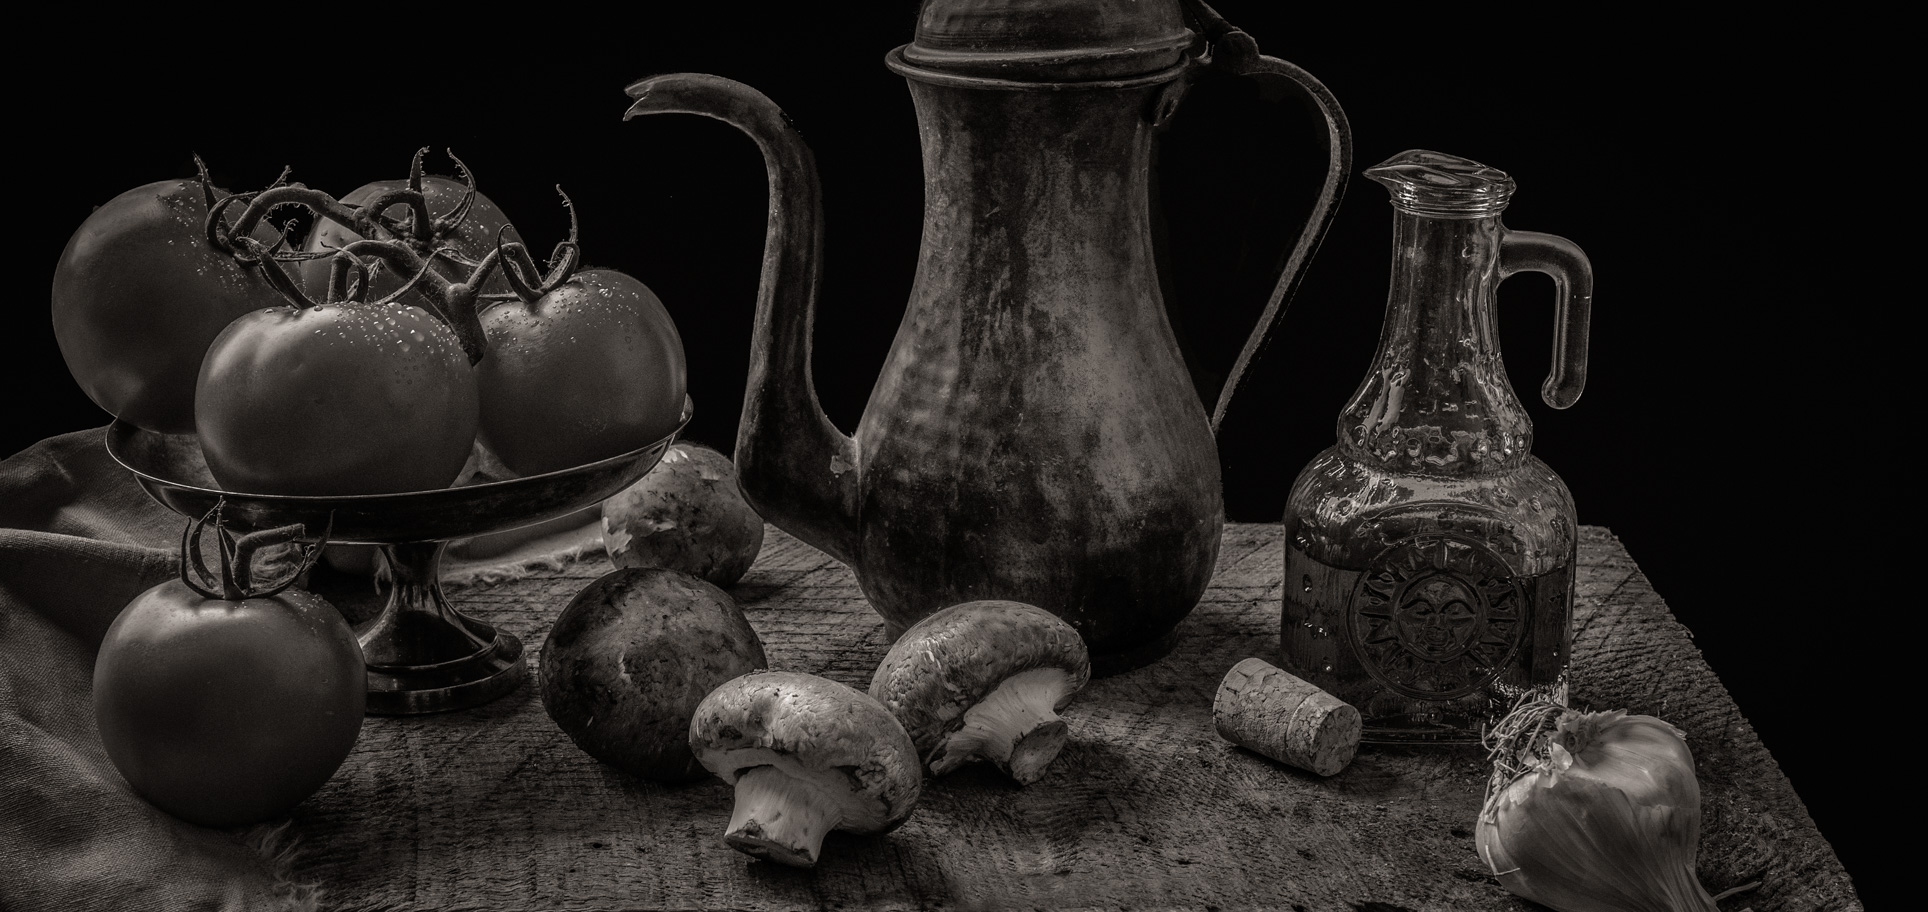 Tomatoes and Mushrooms | Monochrome Version